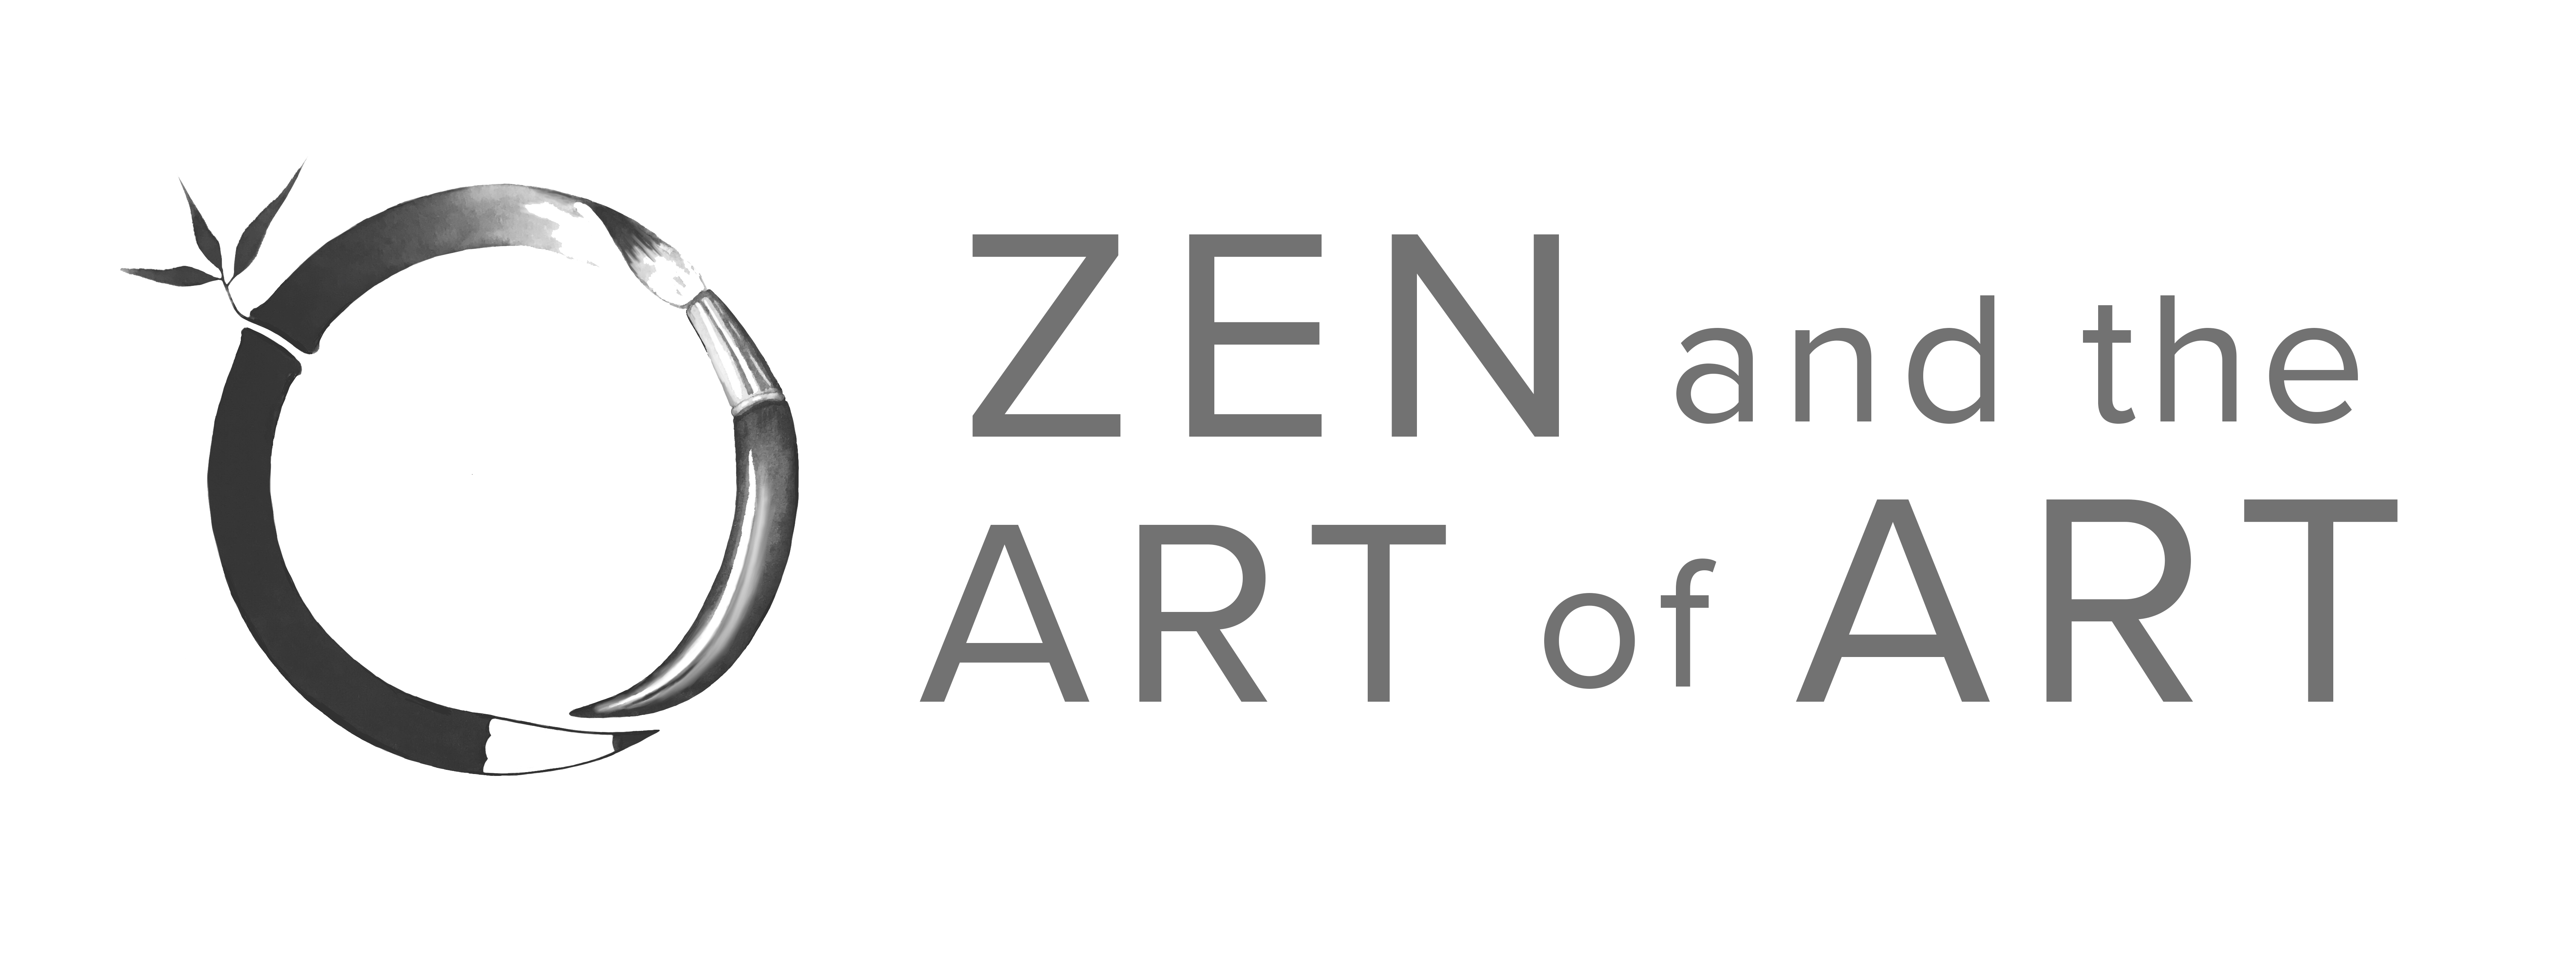 Zen and the Art of Art